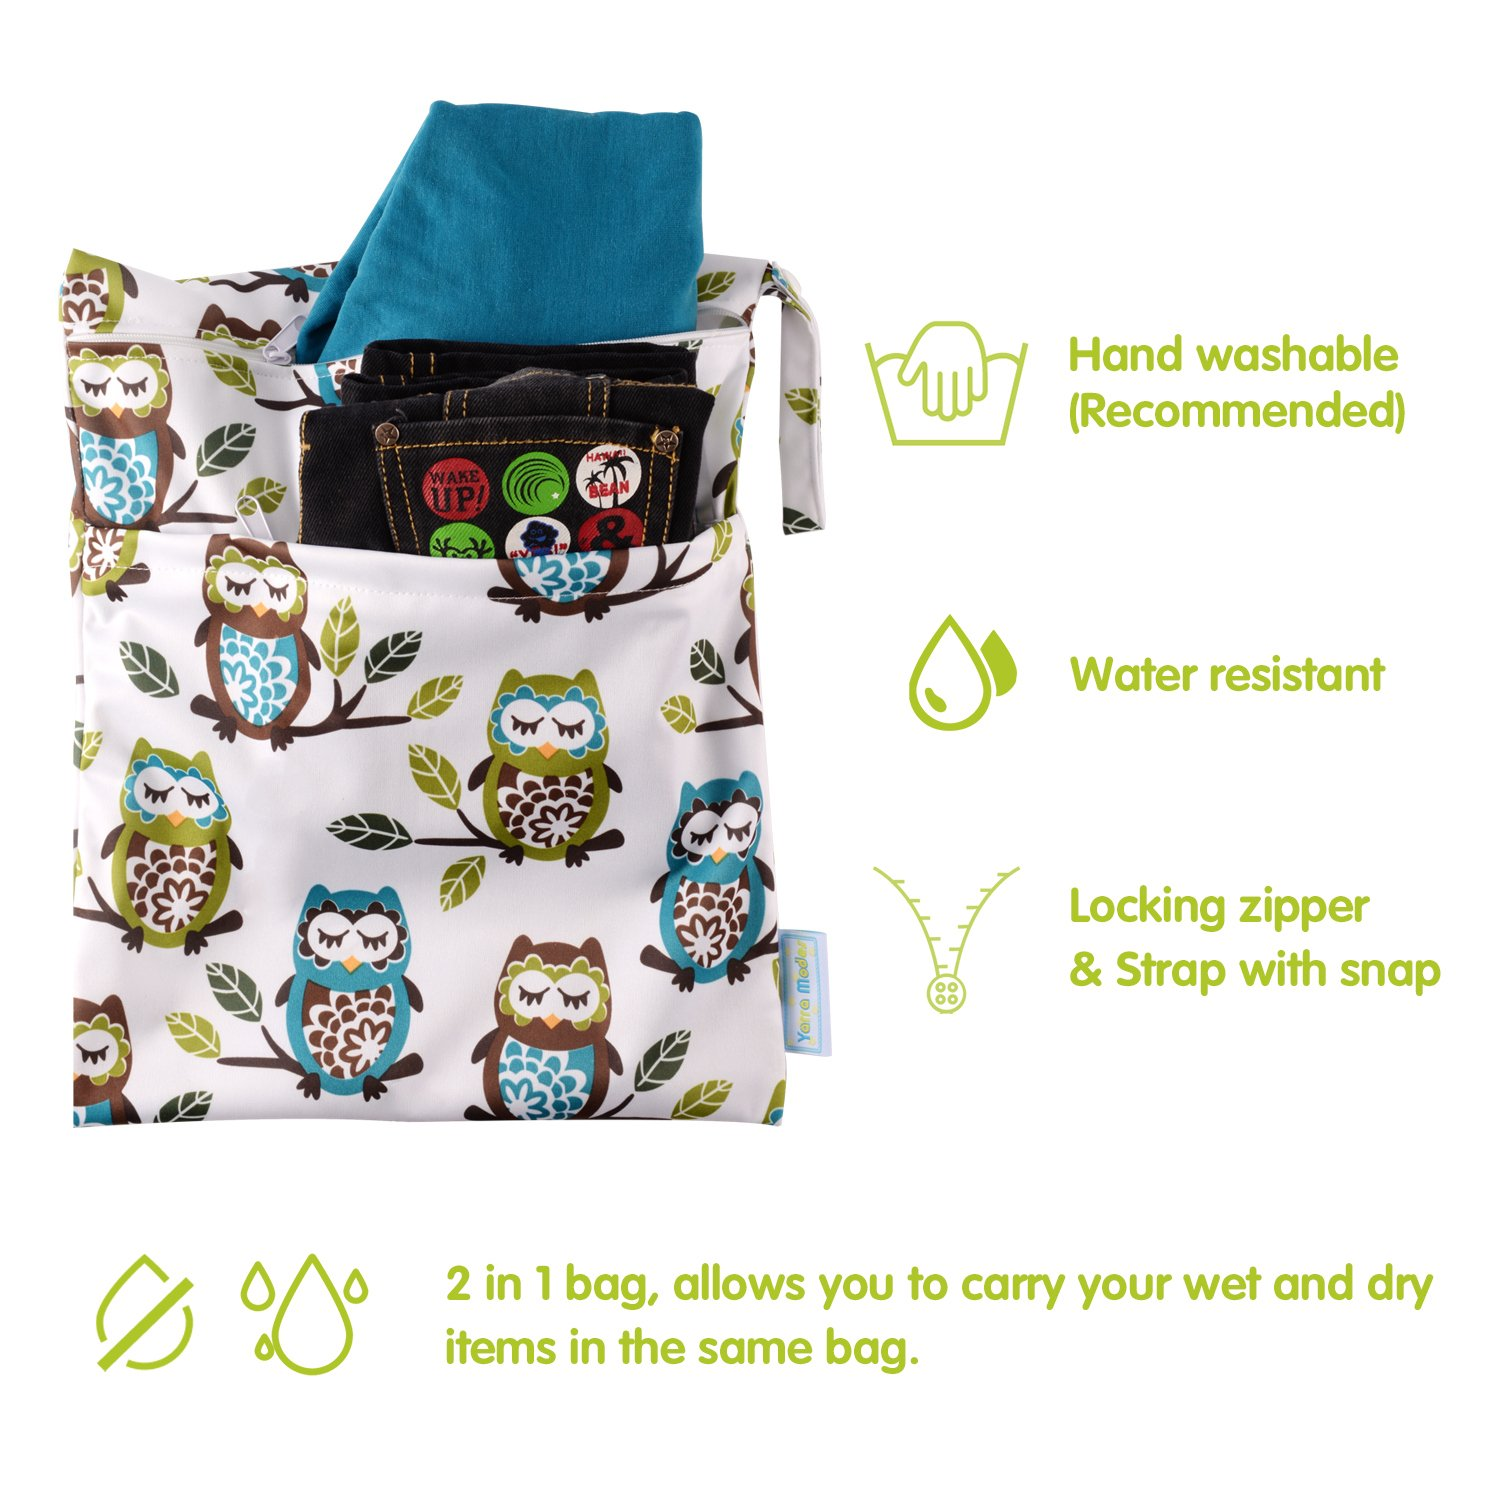 2 Pack Toiletries KEEPREAL Chinese East Asian Dragon Wet Dry Bag for Cloth Diaper/&Swimsuit,Travel/&Beach Water Resistant Wet Bags Perfect for Wet Clothes